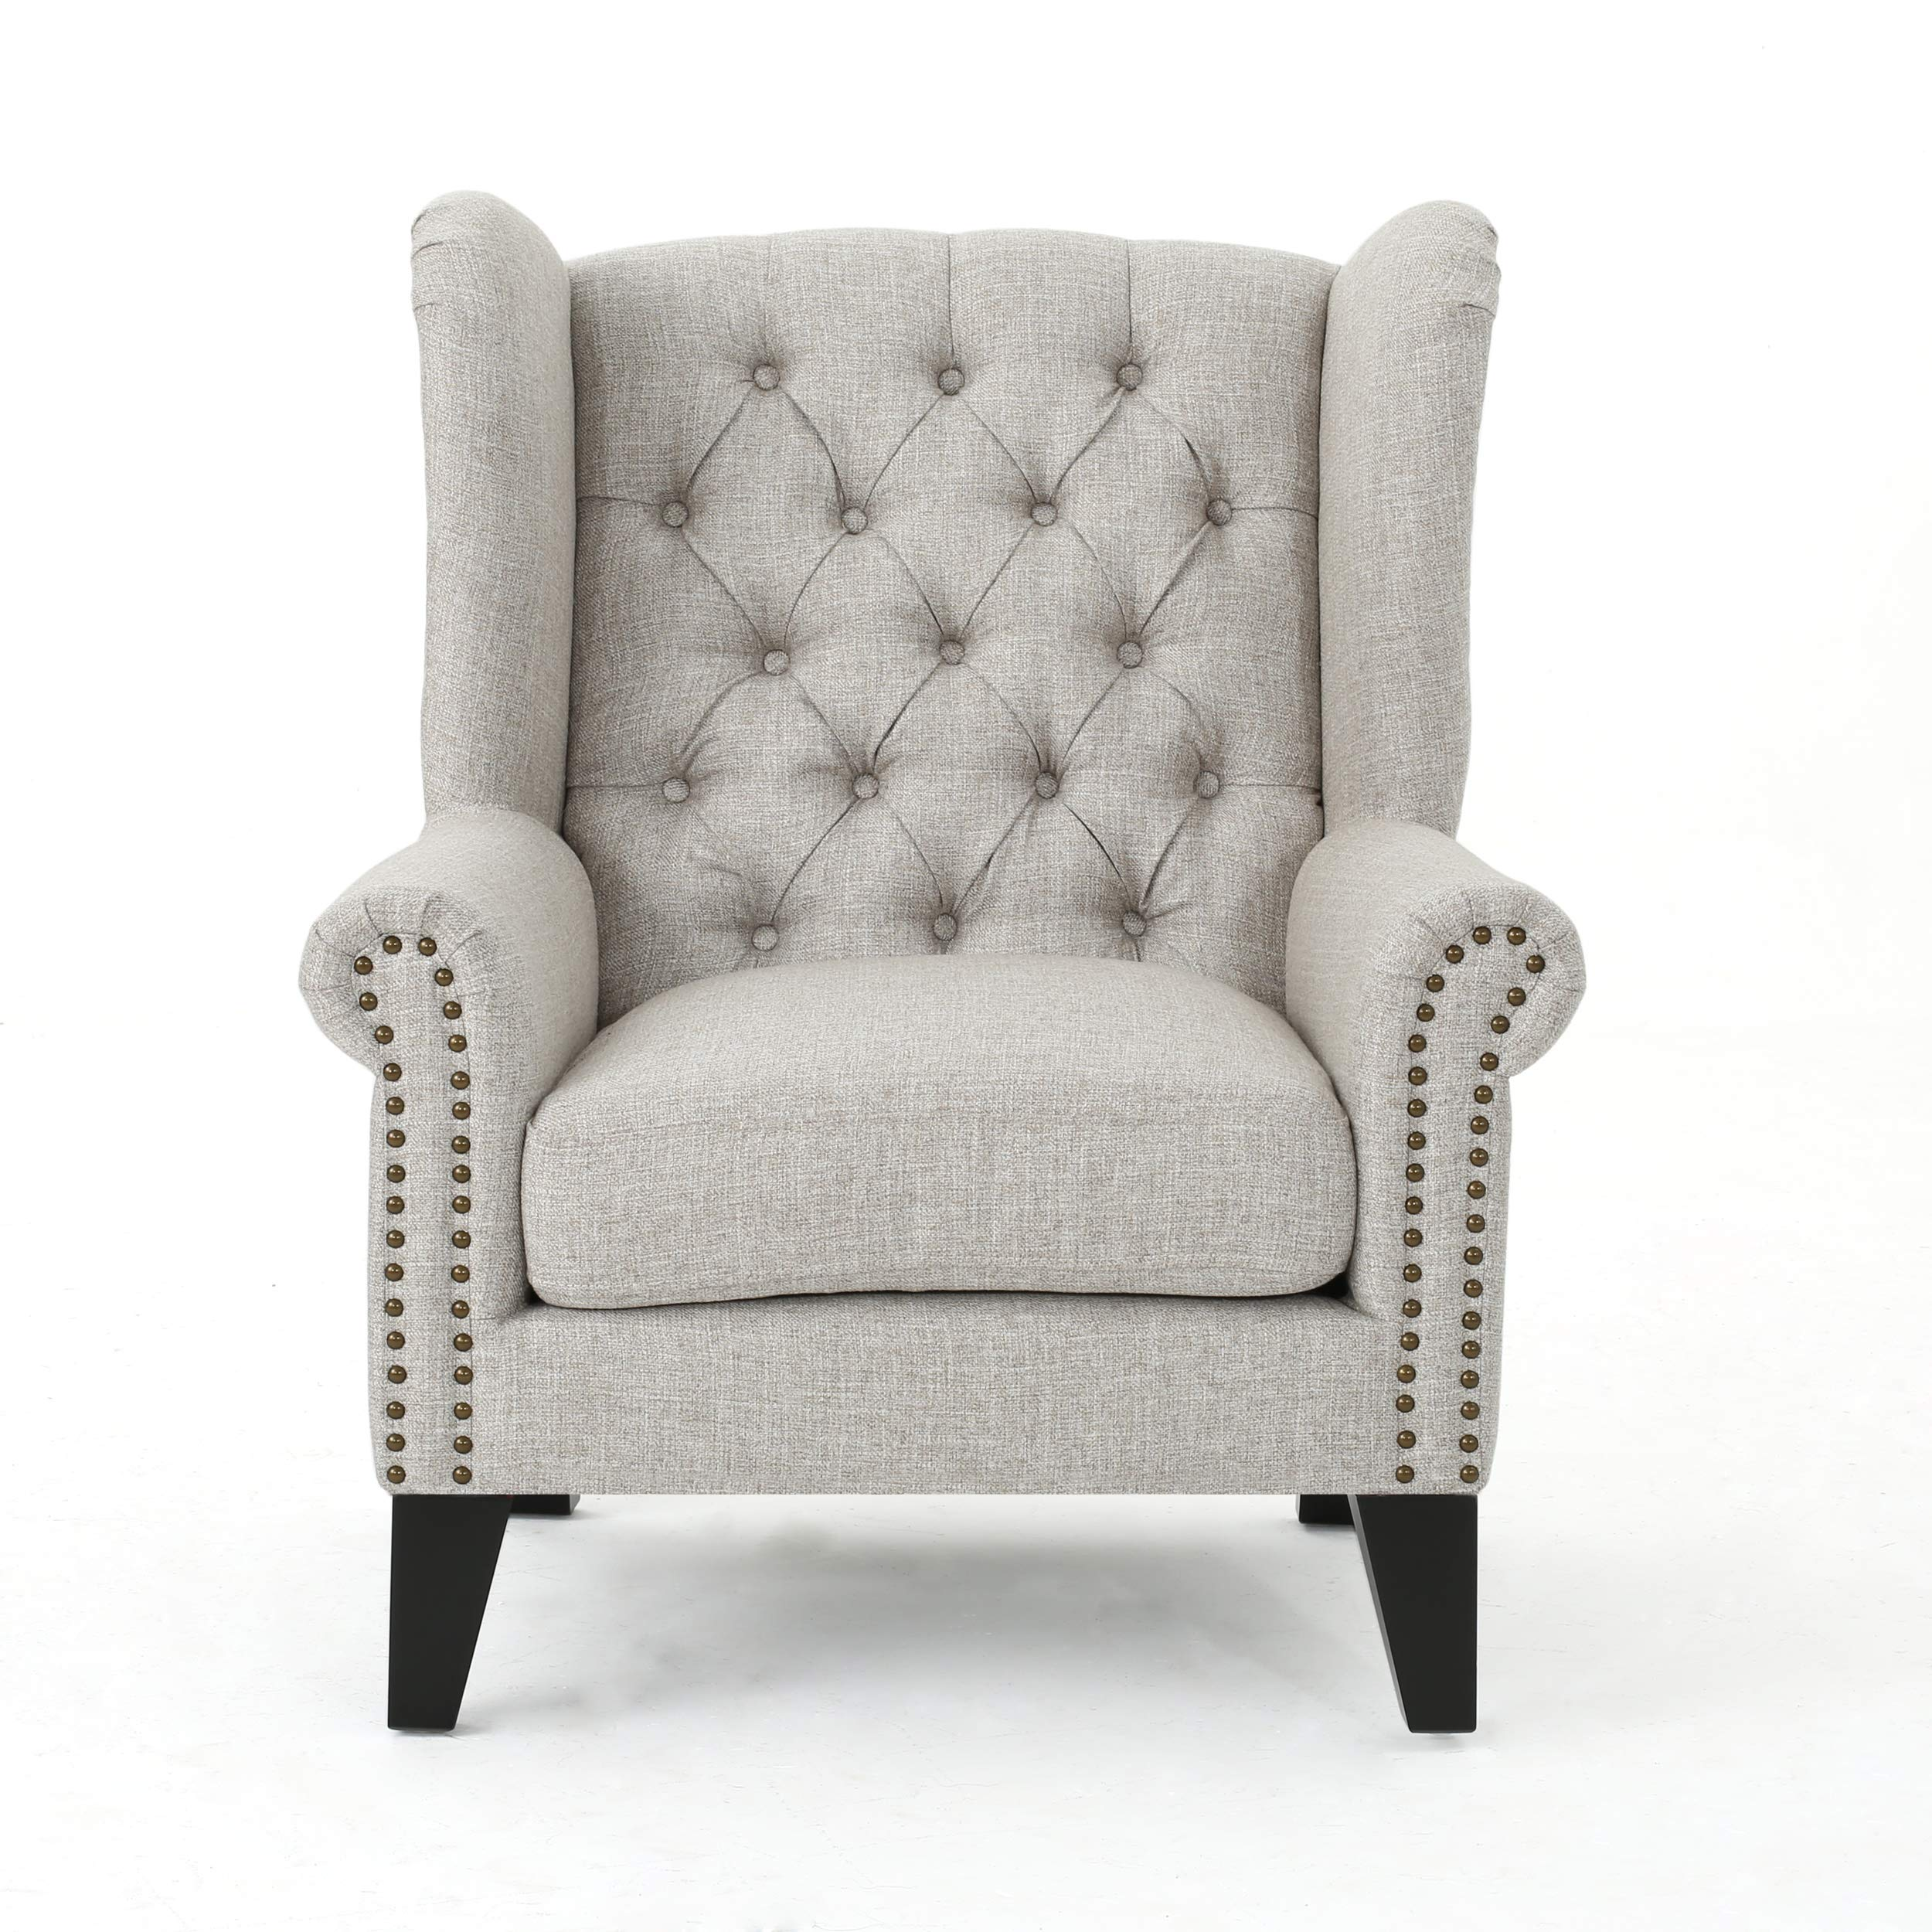 Christopher Knight Home Laird Traditional Winged Fabric Accent Chair, Beige / Dark Brown